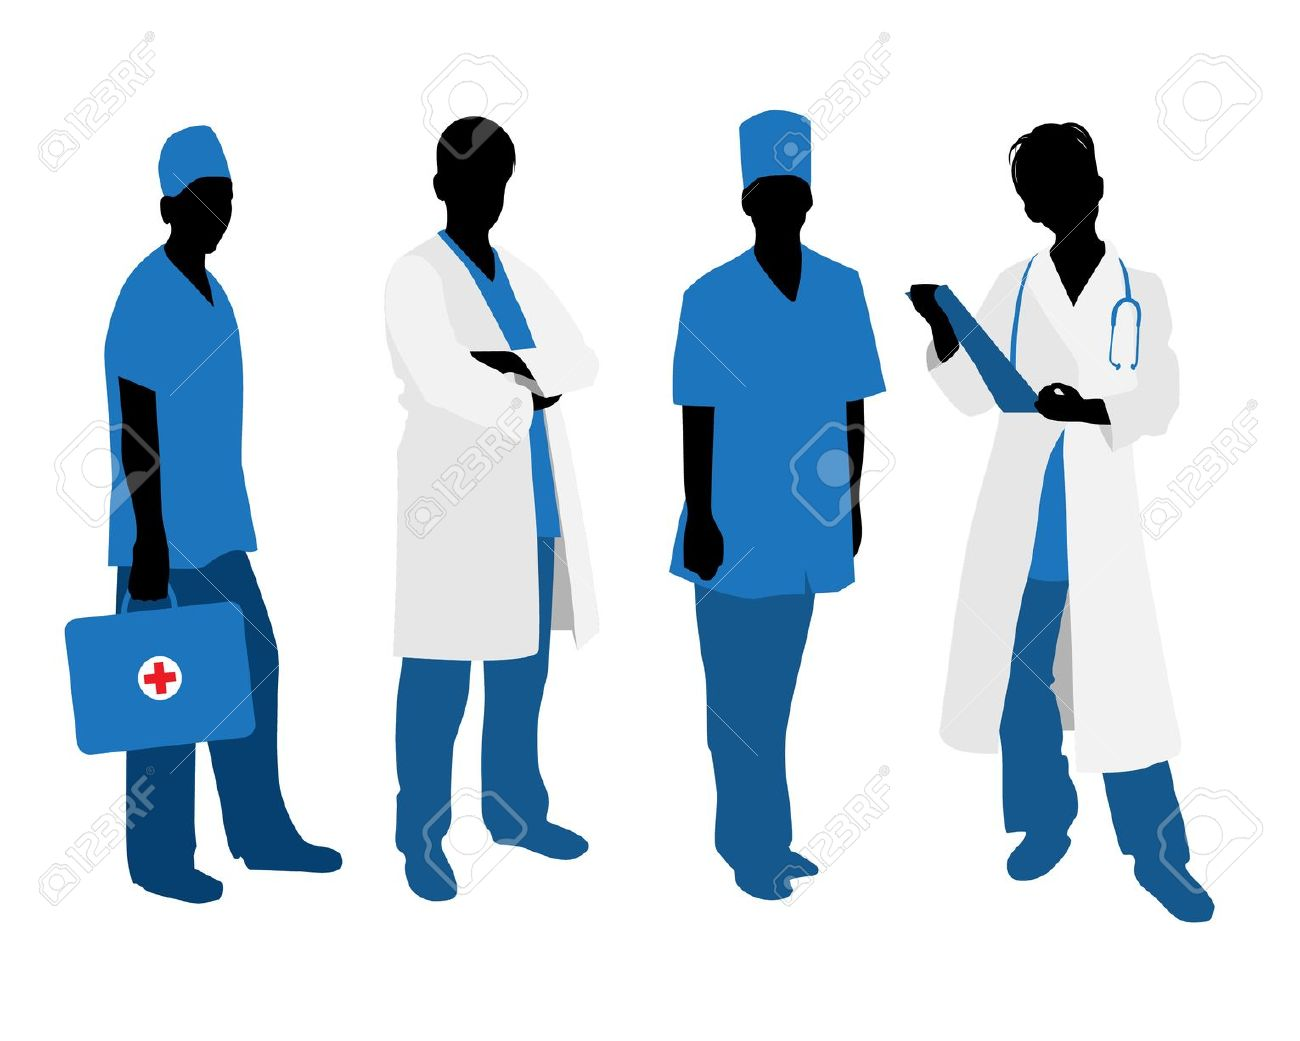 medical-clipart-medical-profession-27909